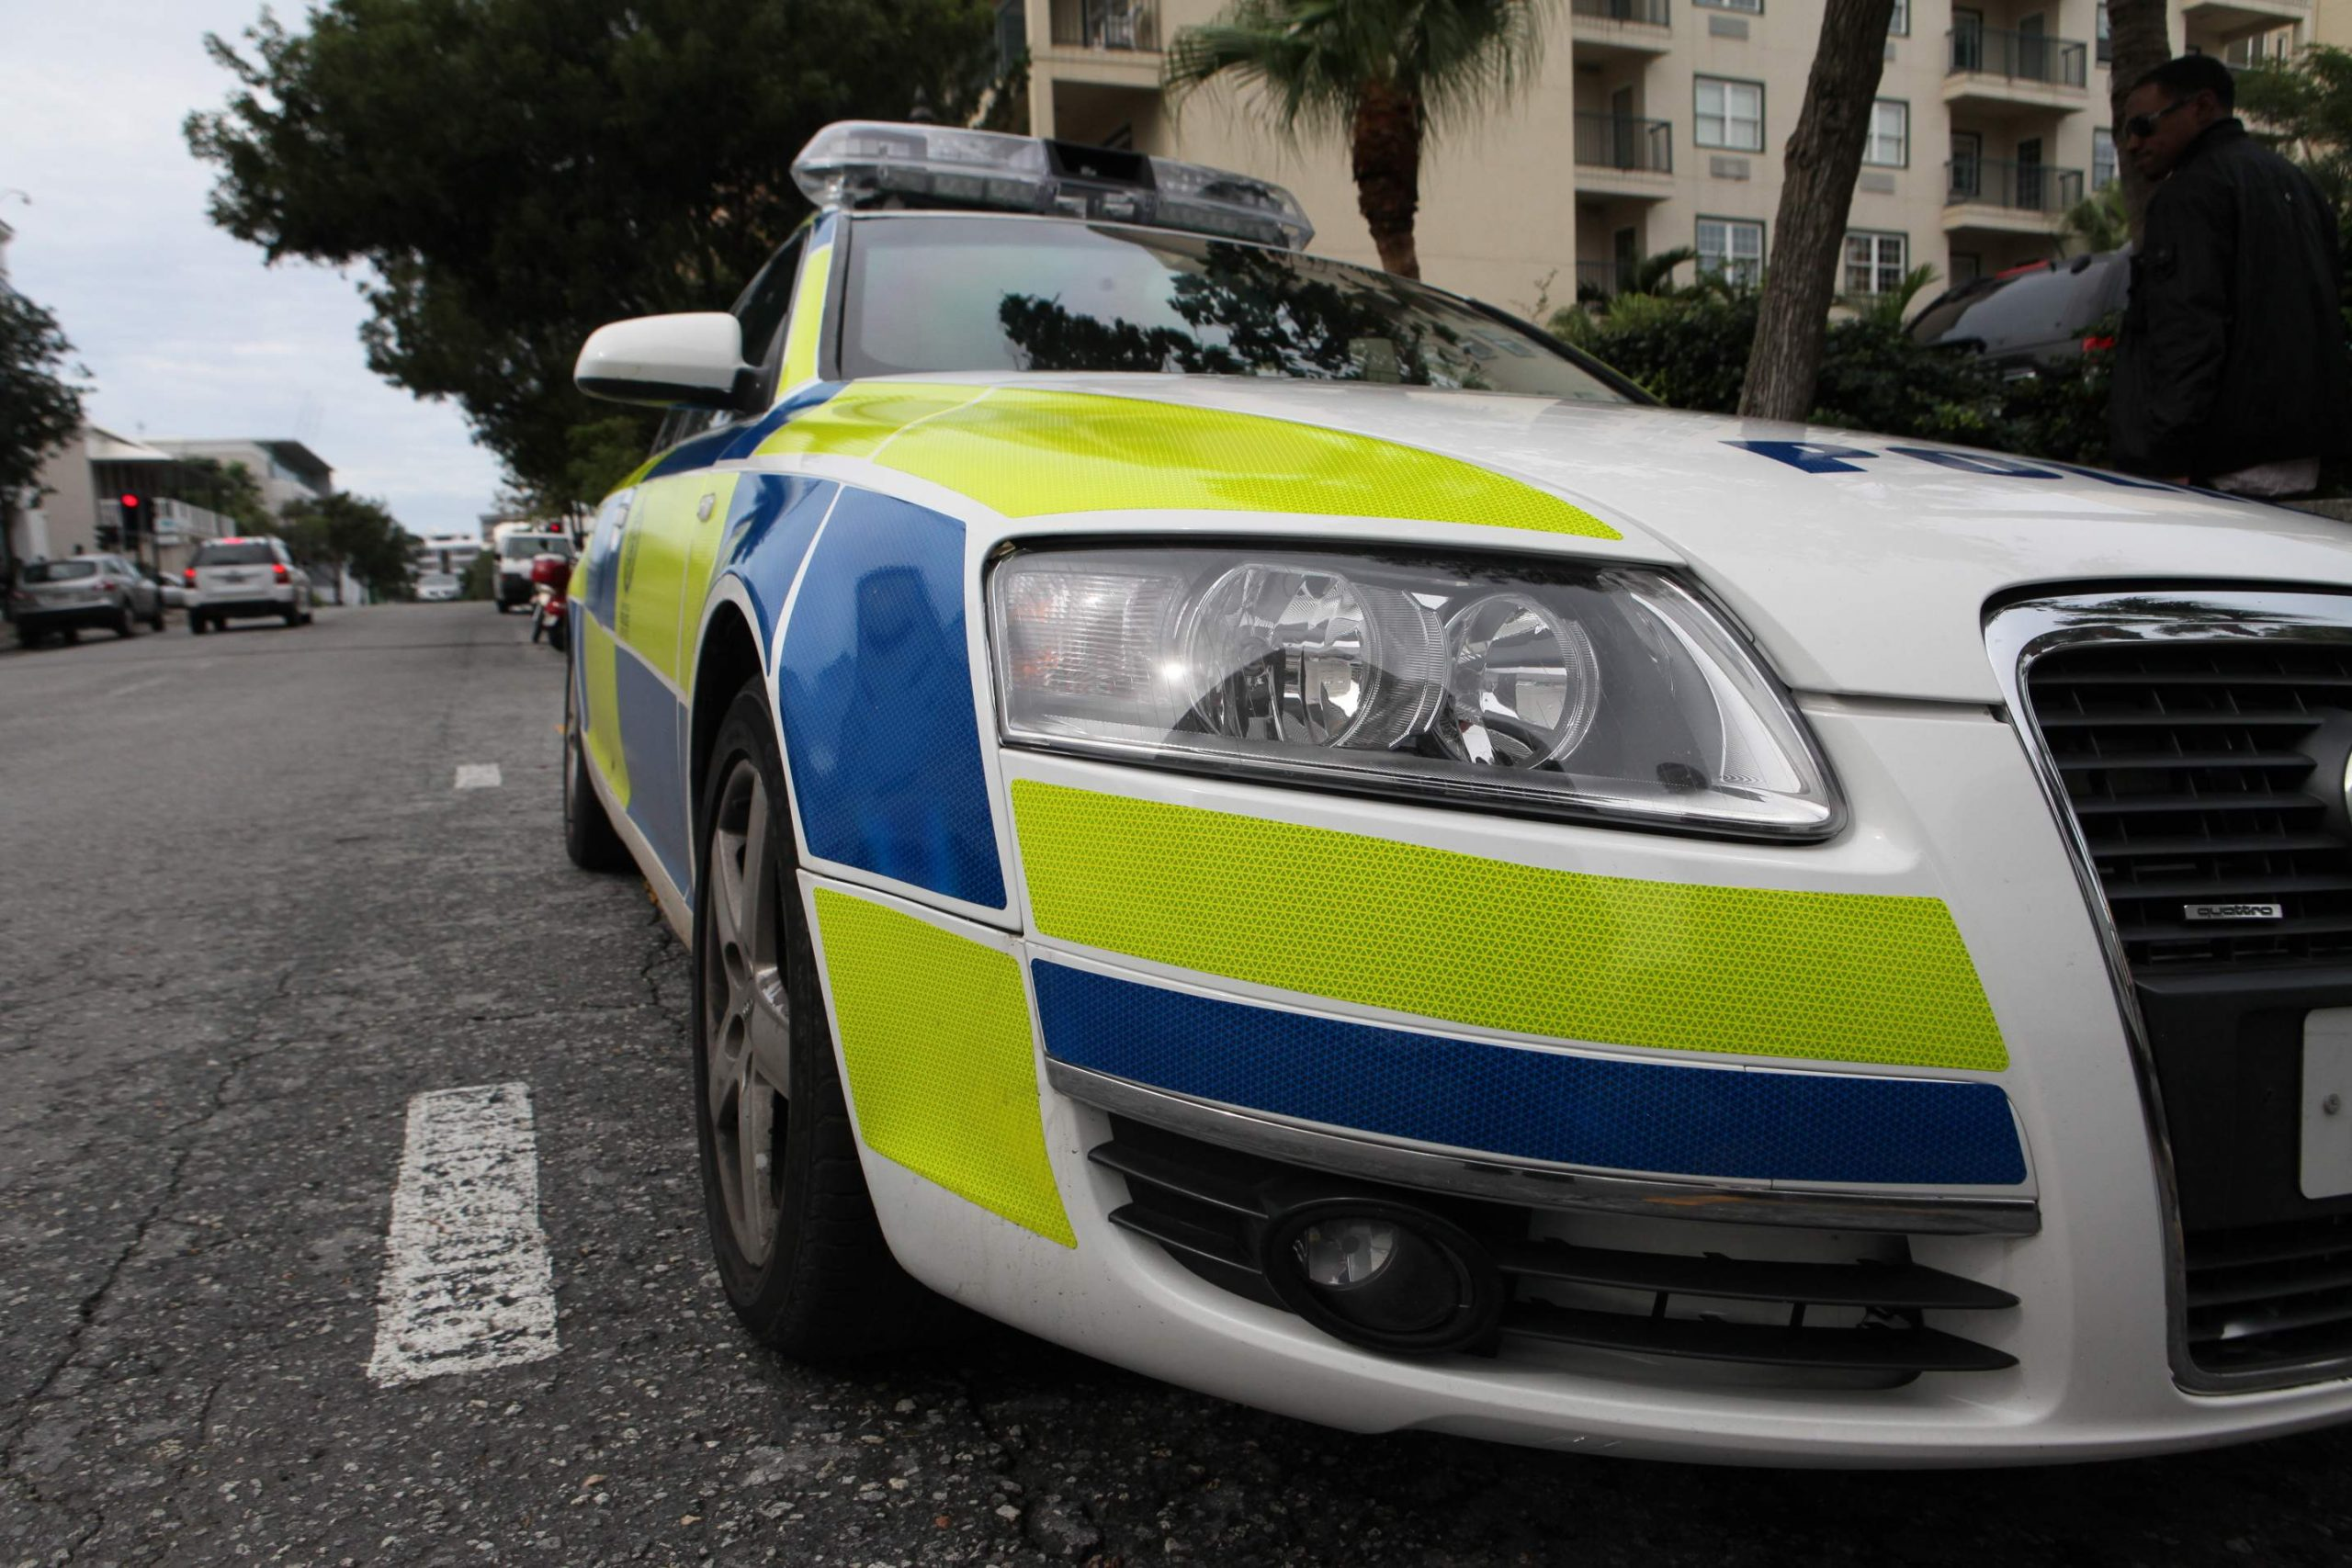 Police warning after spate of crashes